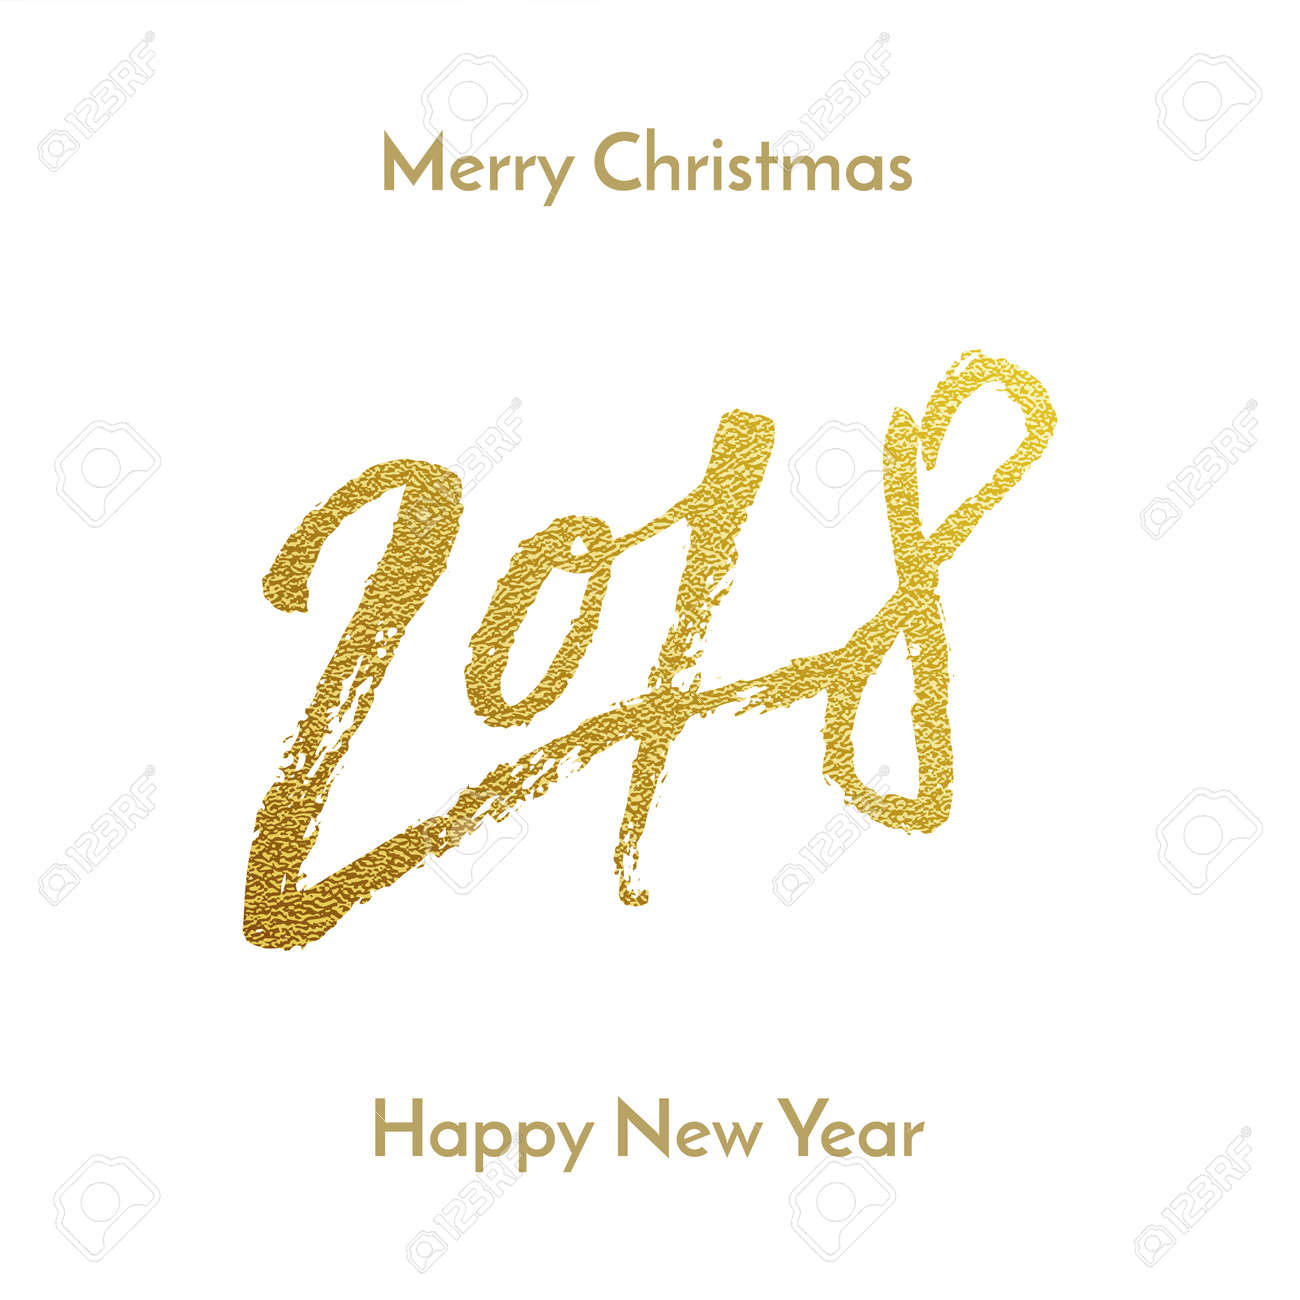 merry christmas 2018 happy new year golden glitter calligraphy lettering font for greeting card design template